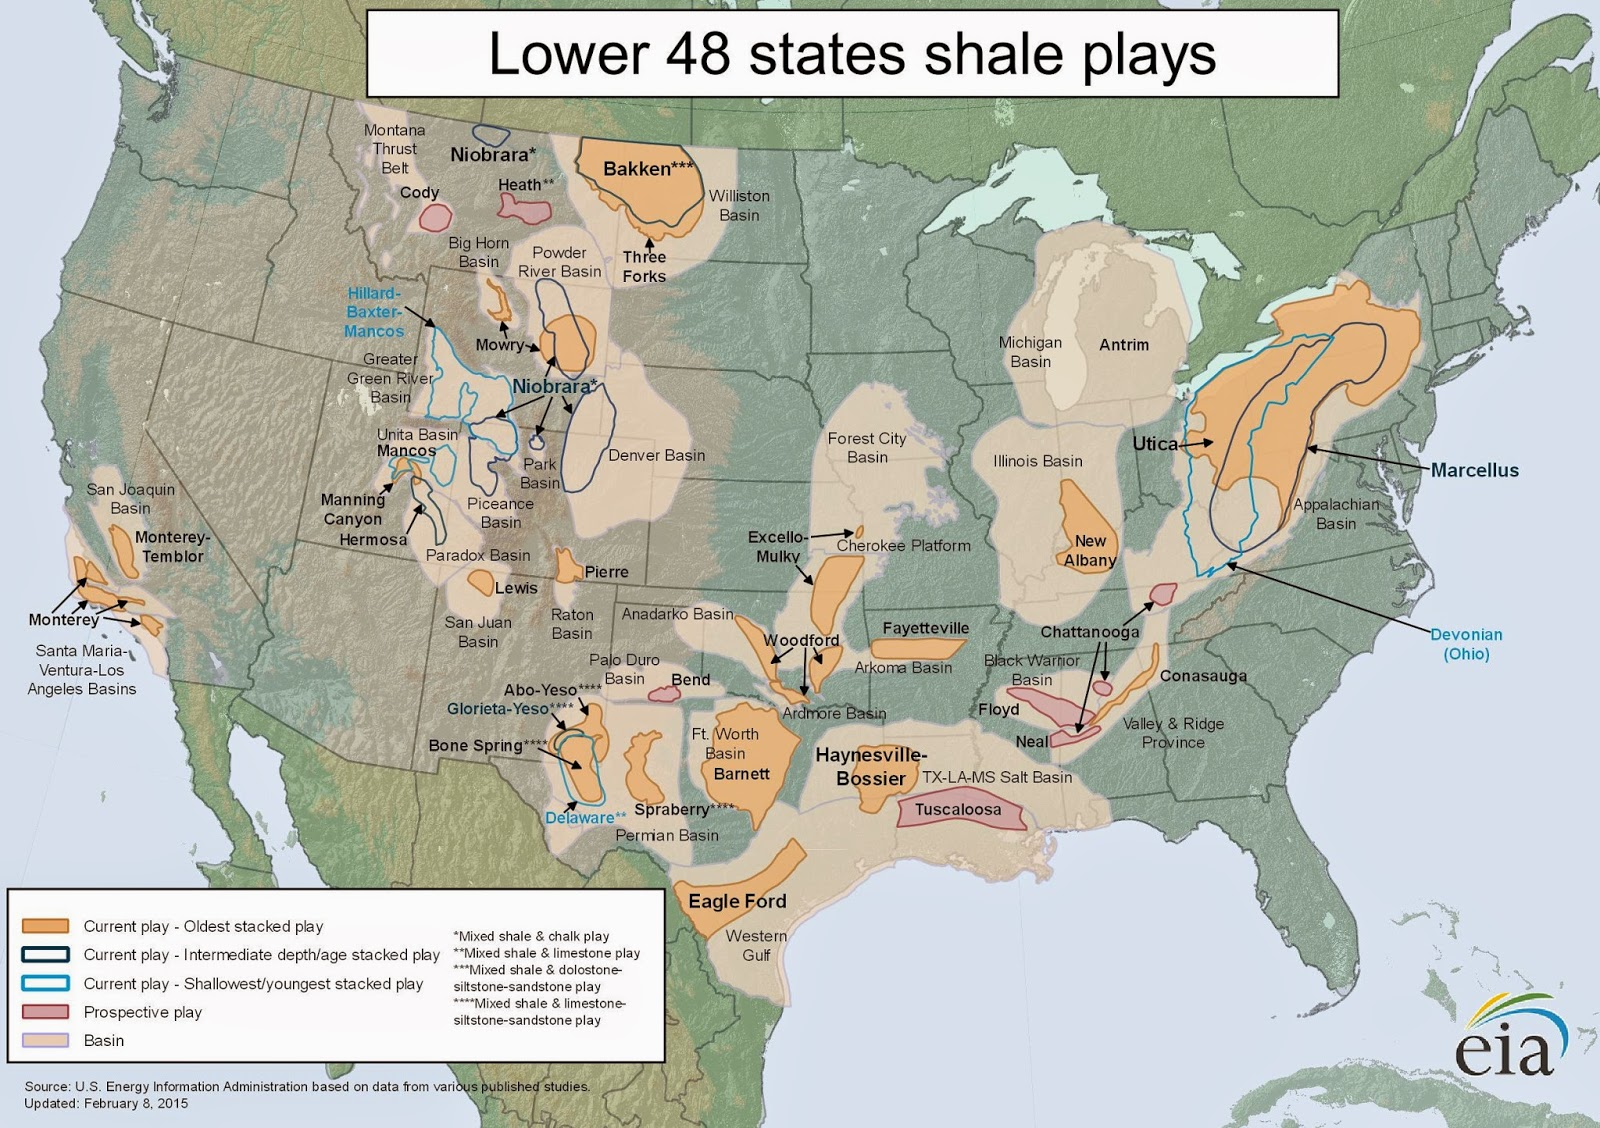 EIA: Lower 48 Shale Plays - 8 February 2015